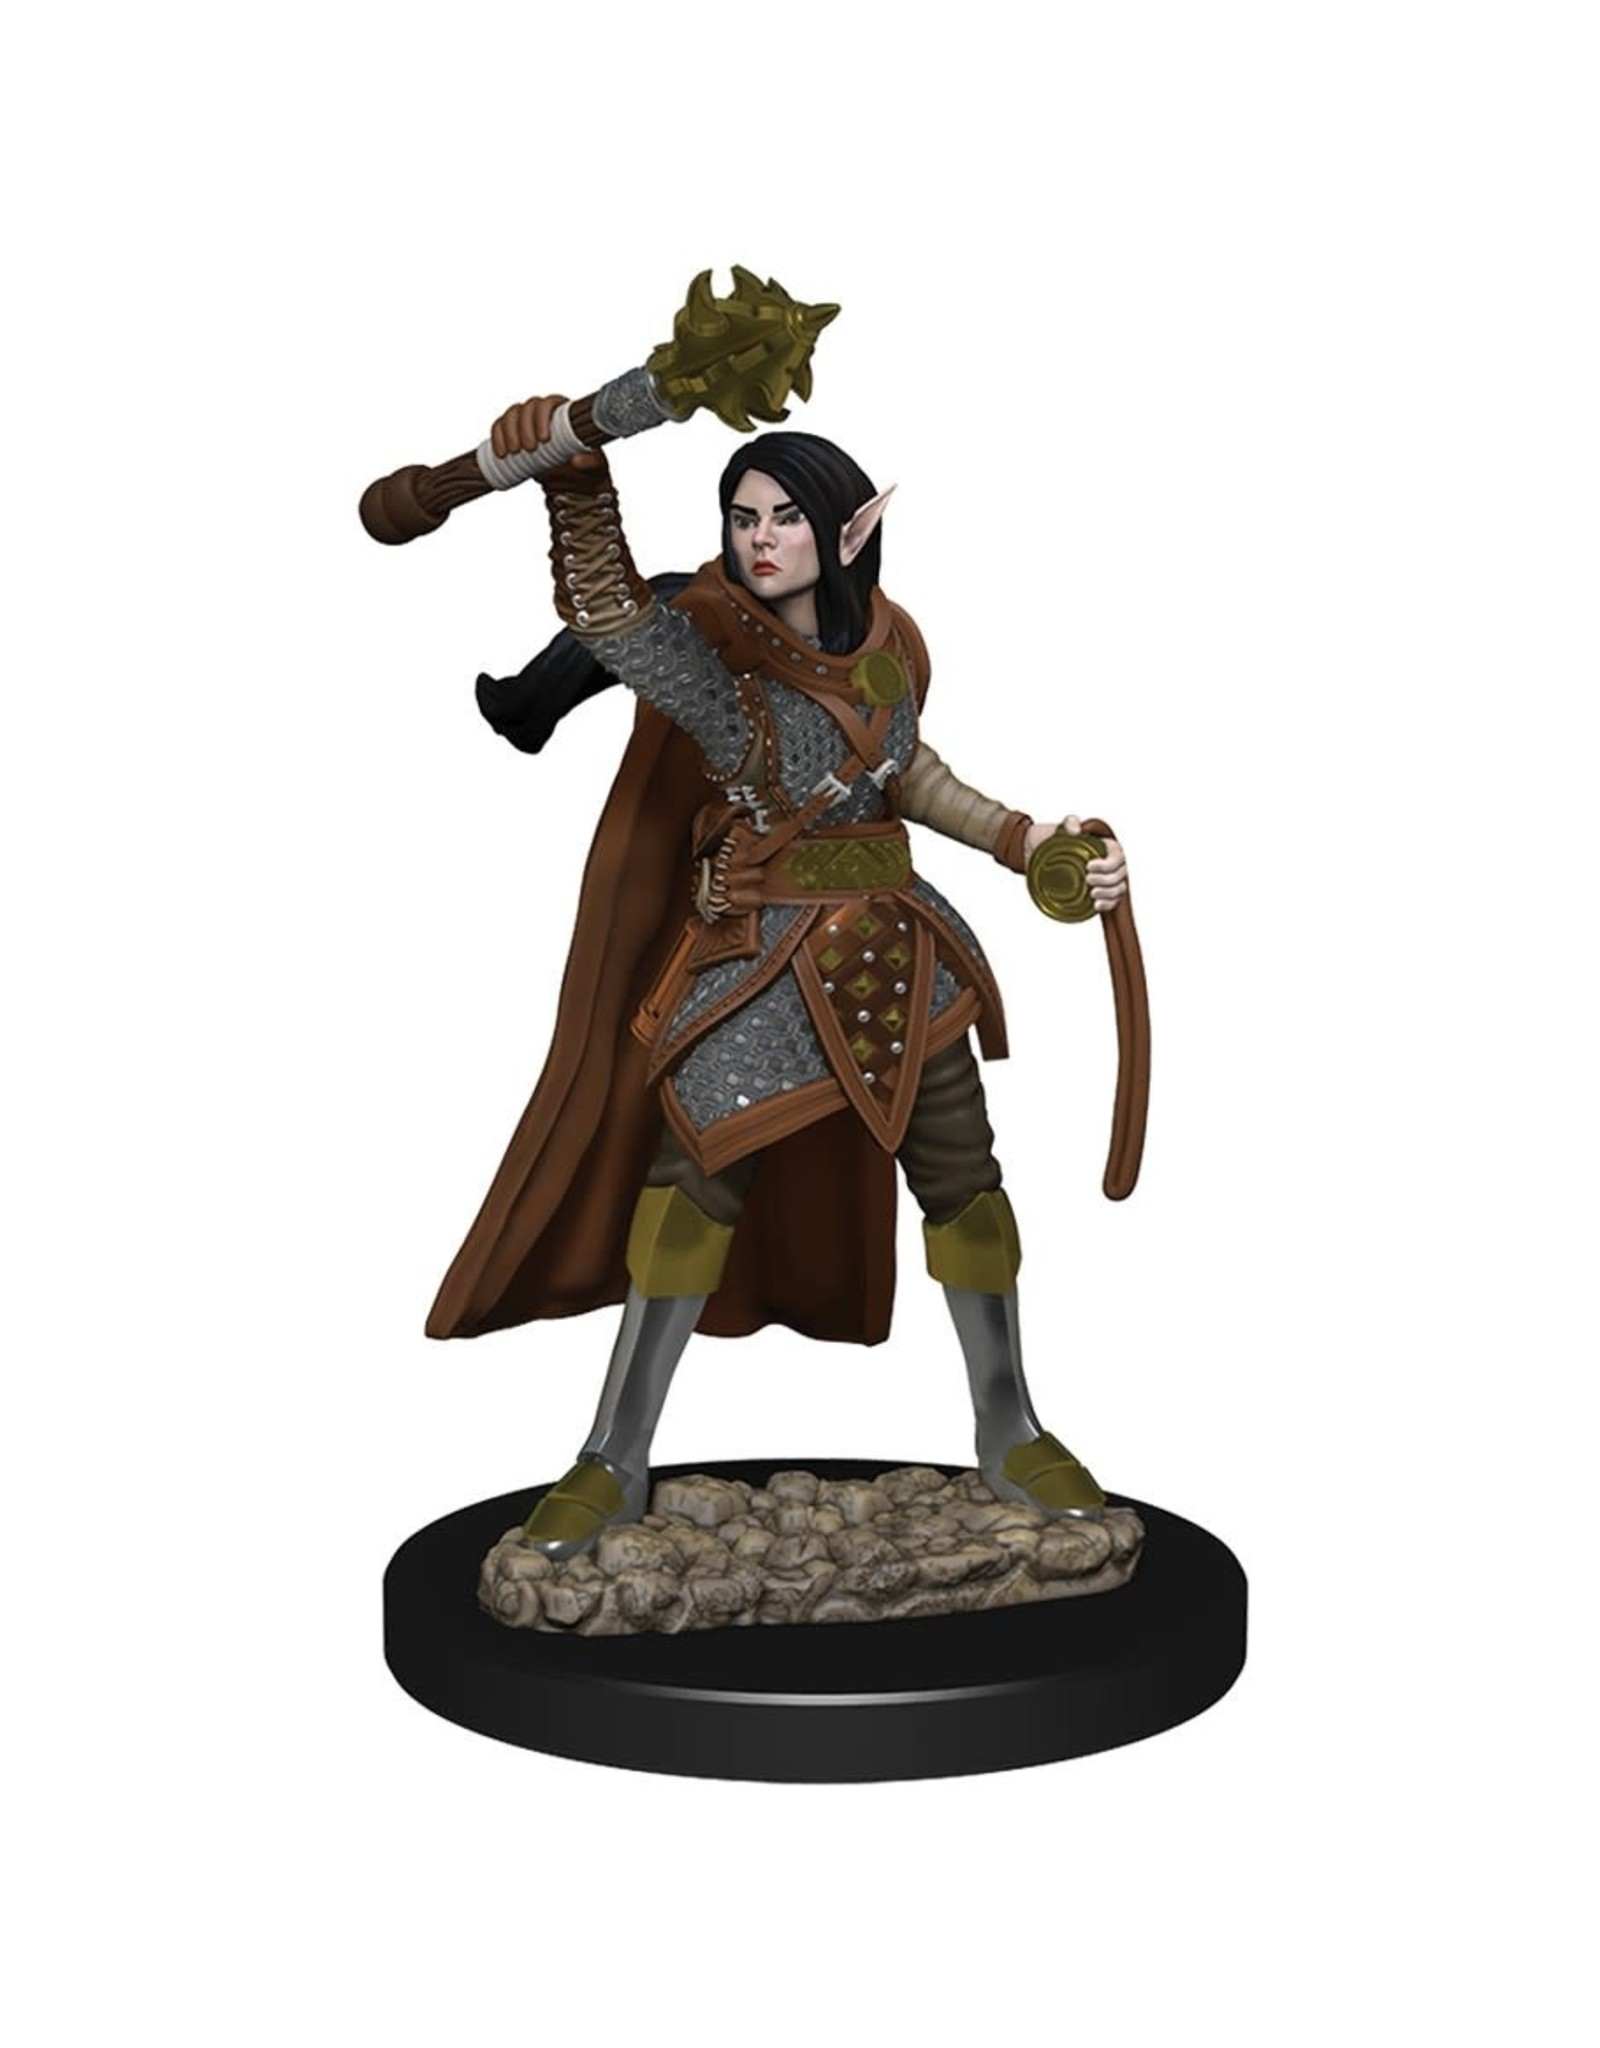 Wizkids D&D Minis: Elf Female Cleric W3 Icons of the Realms Premium Figures